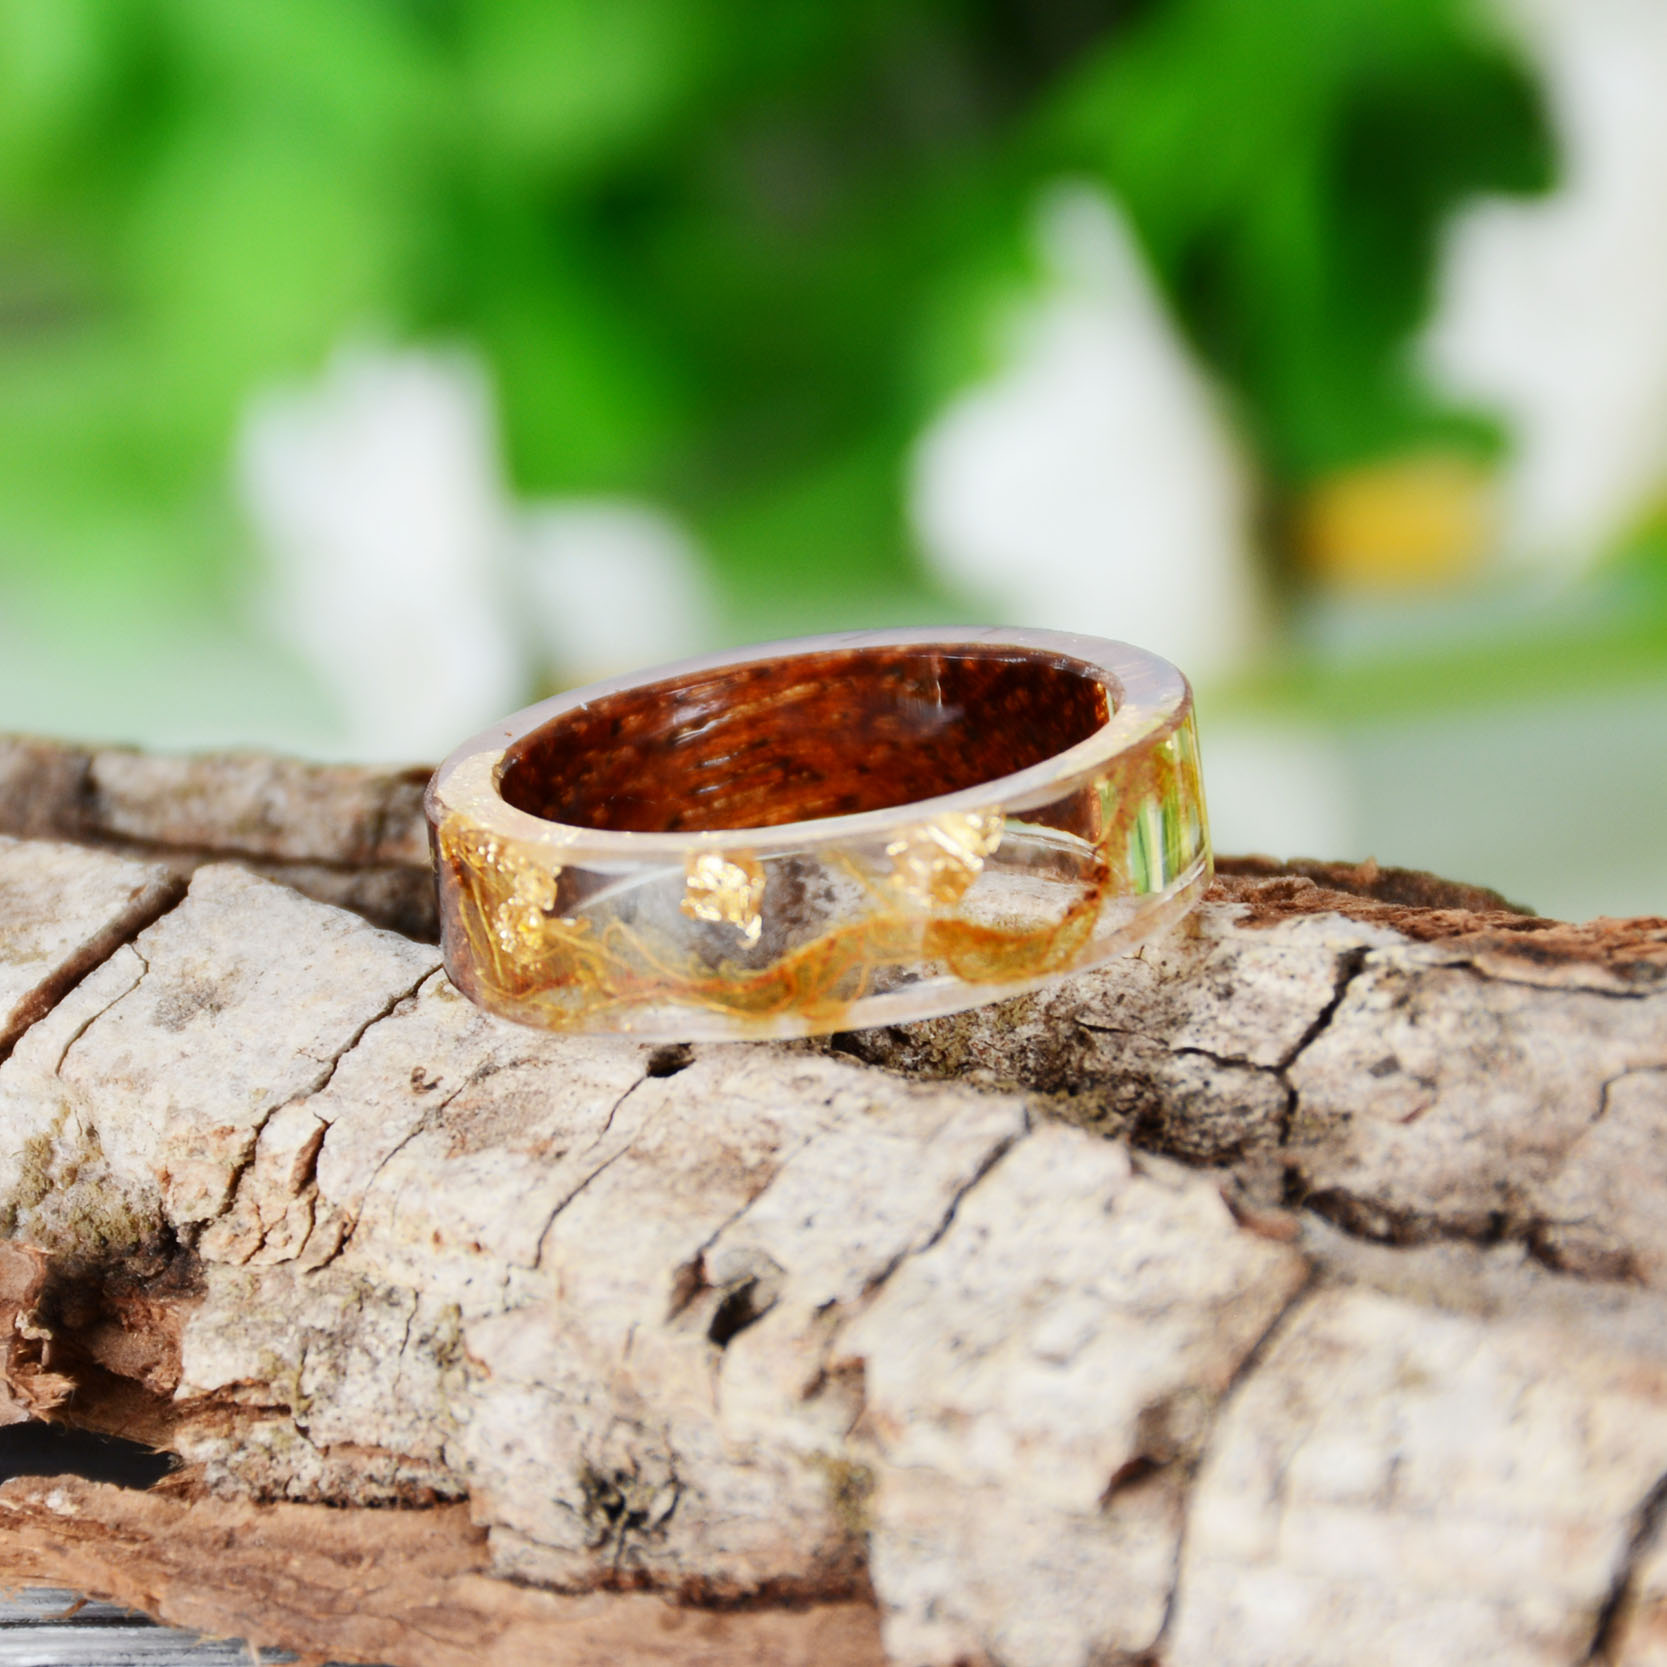 HTB1fB3onwZC2uNjSZFnq6yxZpXaR - Hot Sale Handmade Wood Resin Ring Dried Flowers Plants Inside Jewelry Resin Ring Transparent Anniversary Ring for Women